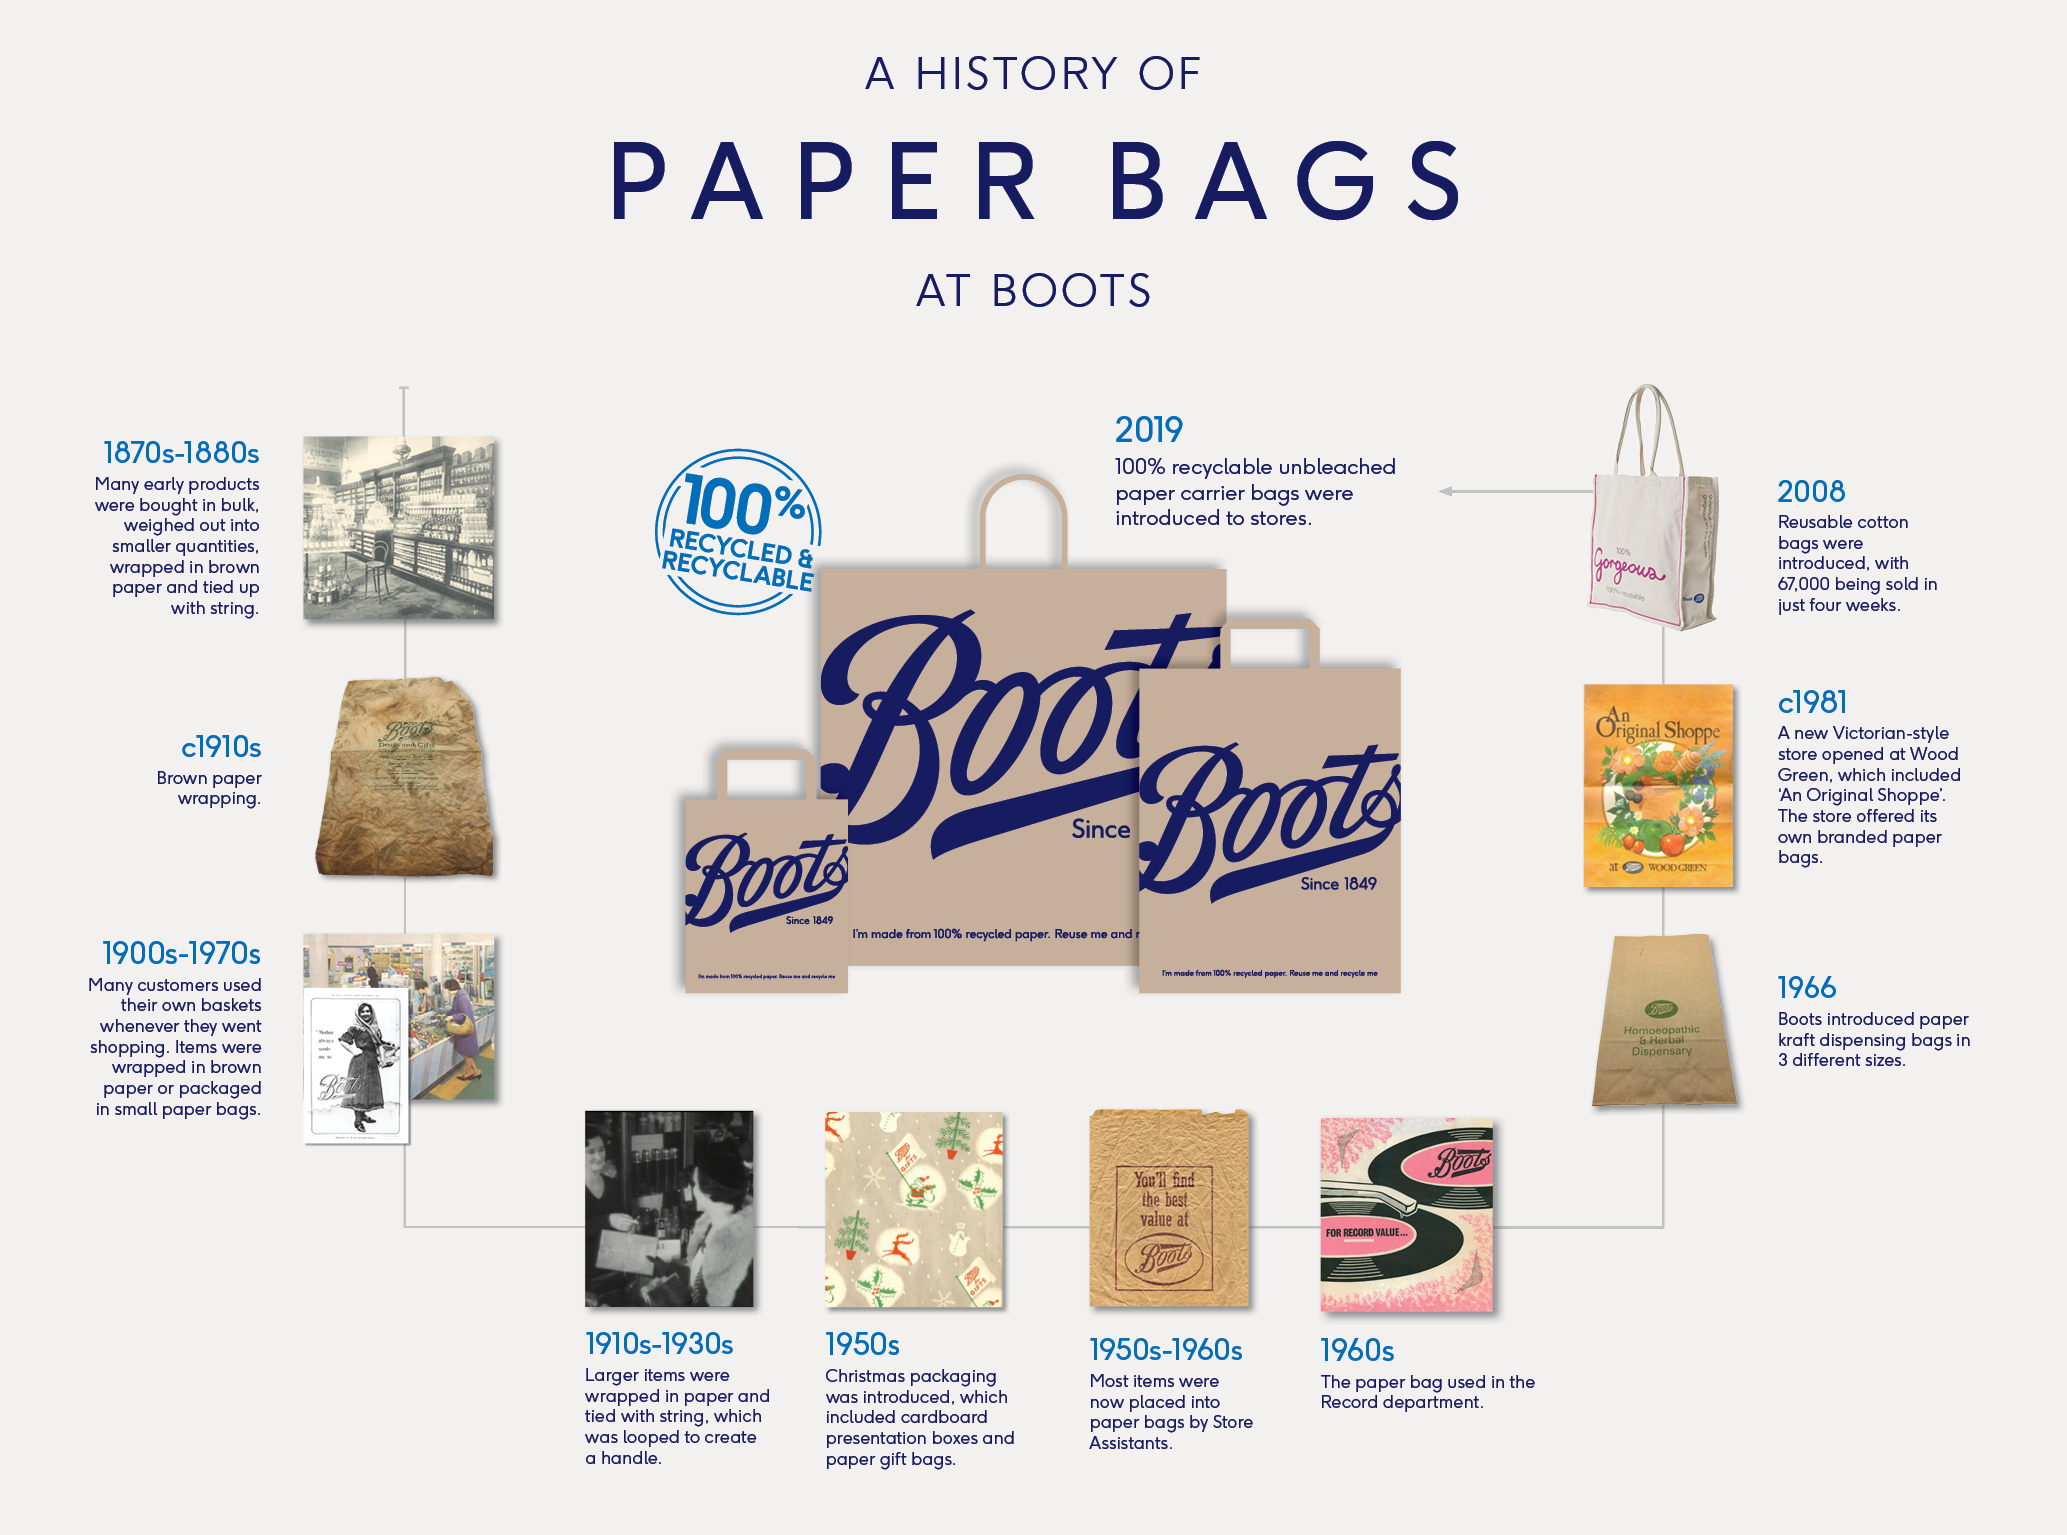 Boots UK to replace plastic carrier bags with unbleached